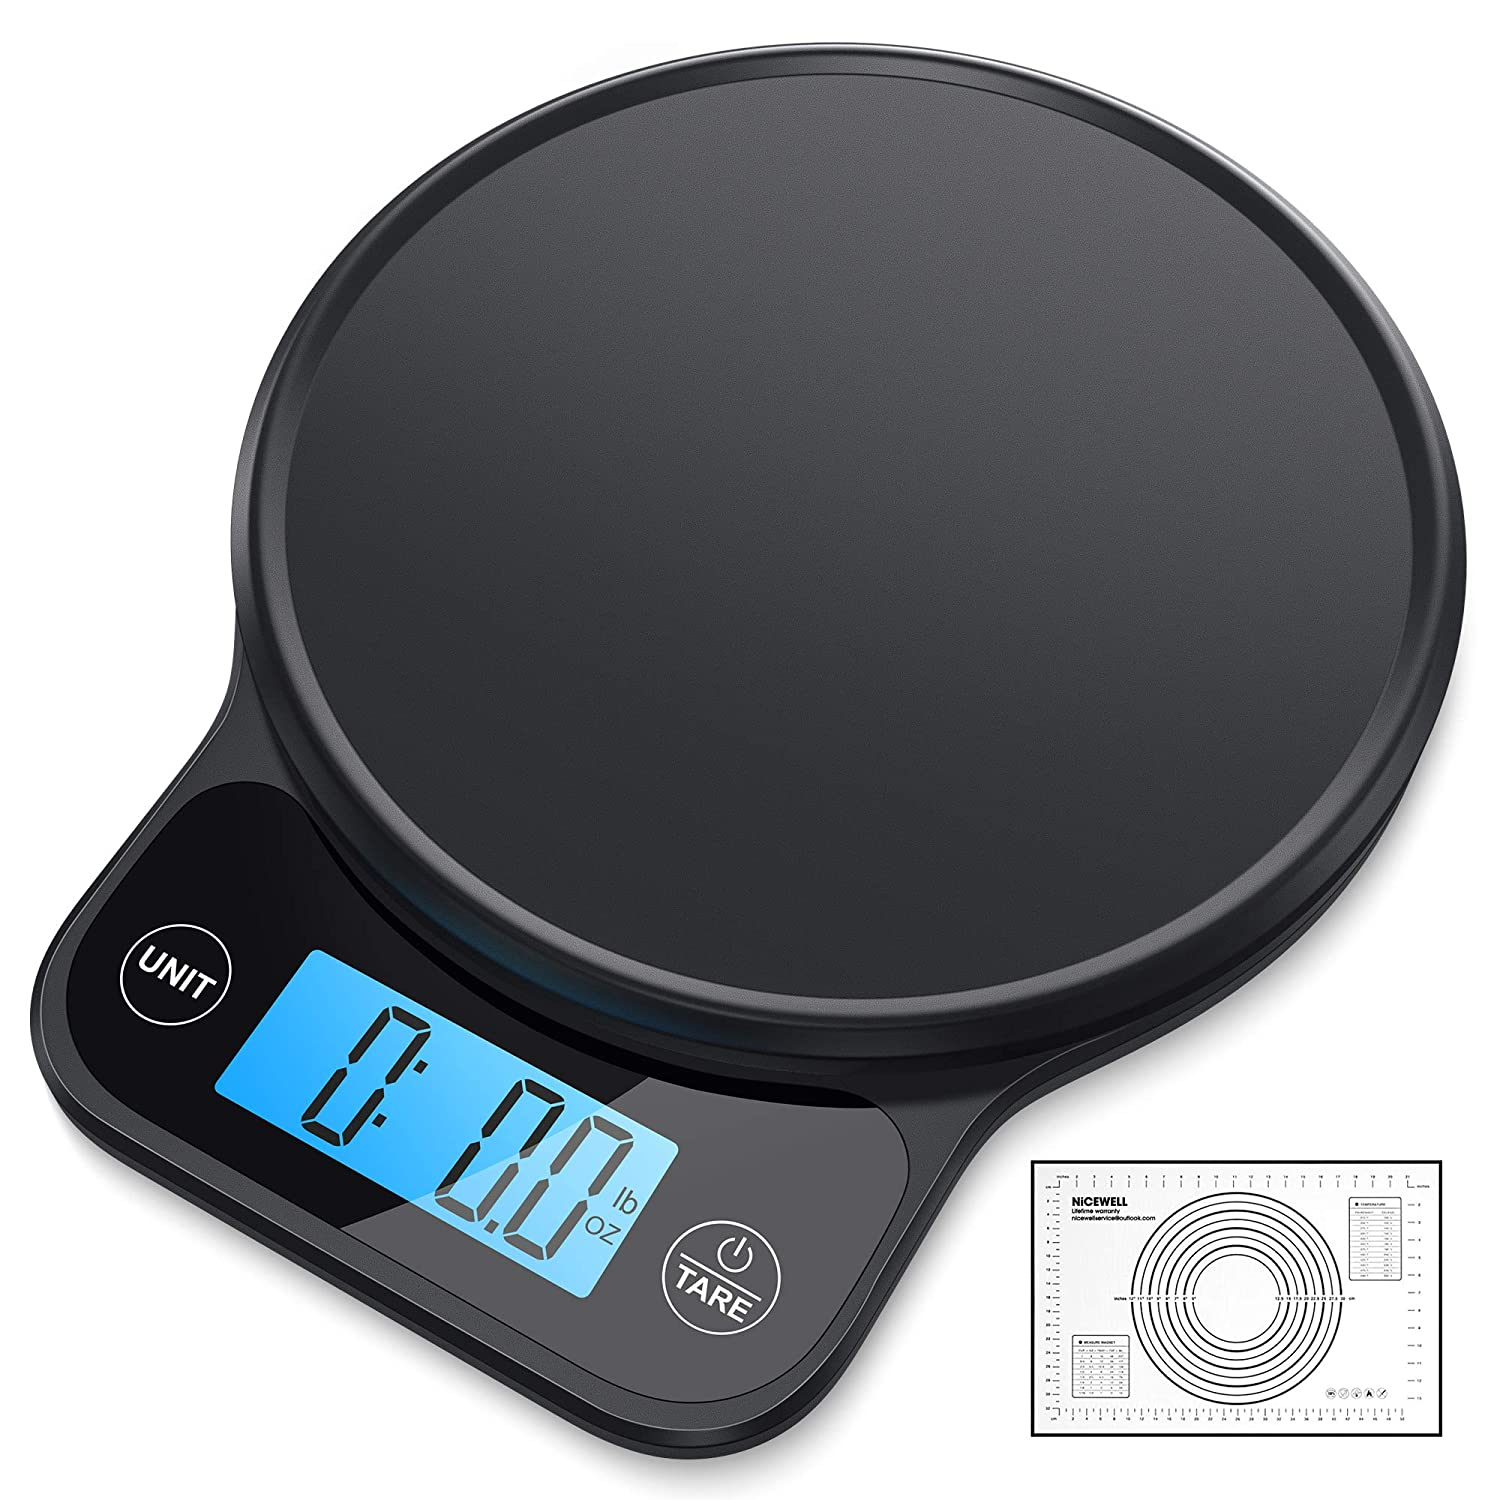 Nicewell Kitchen Scale, with Pastry Mat, Highly Accurate Digital Food Scale 13 lbs 6kgs Max, Clean Modern Black Finish. Includes Batteries